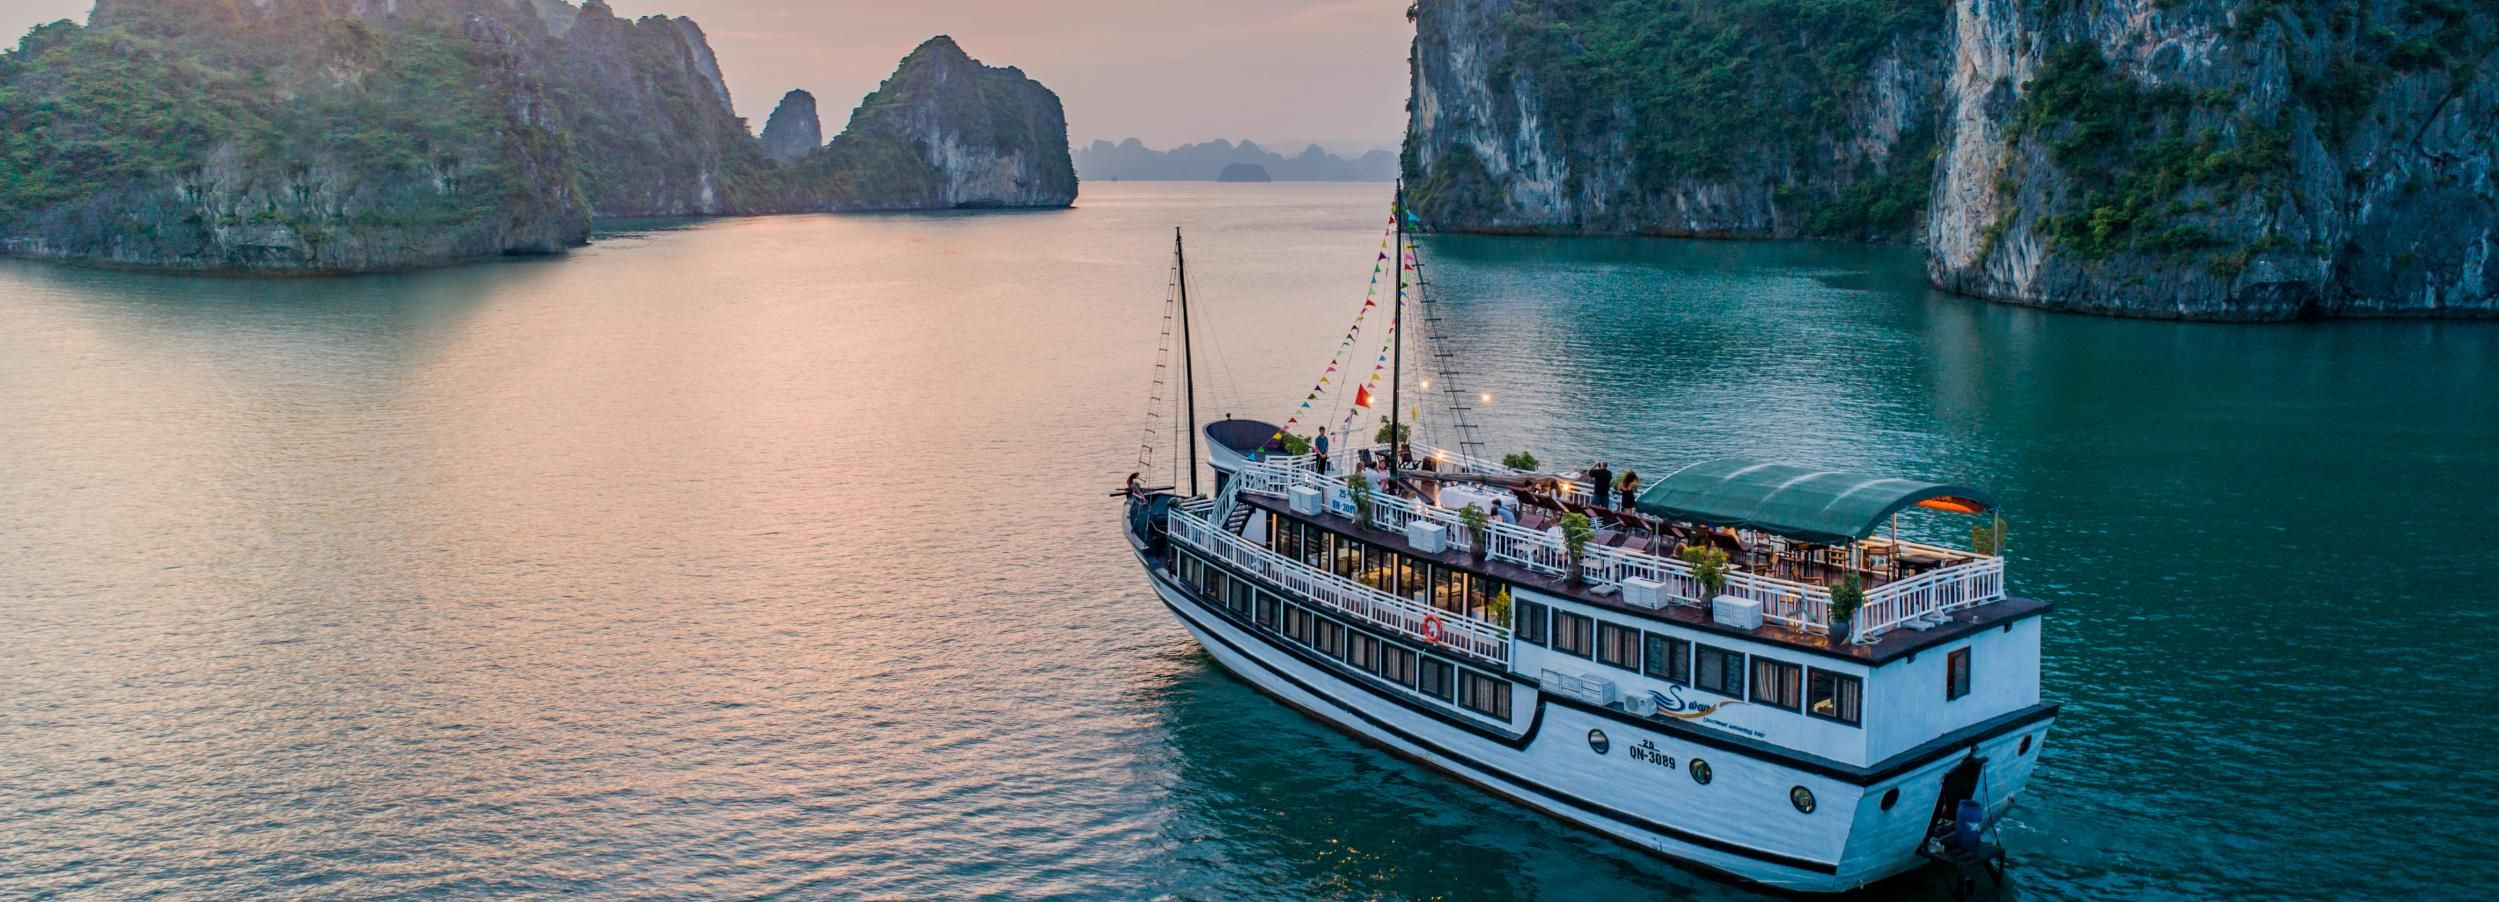 Pristine Bai Tu Long Bay 3-Day w/ Swan Boutique Cruise 4*